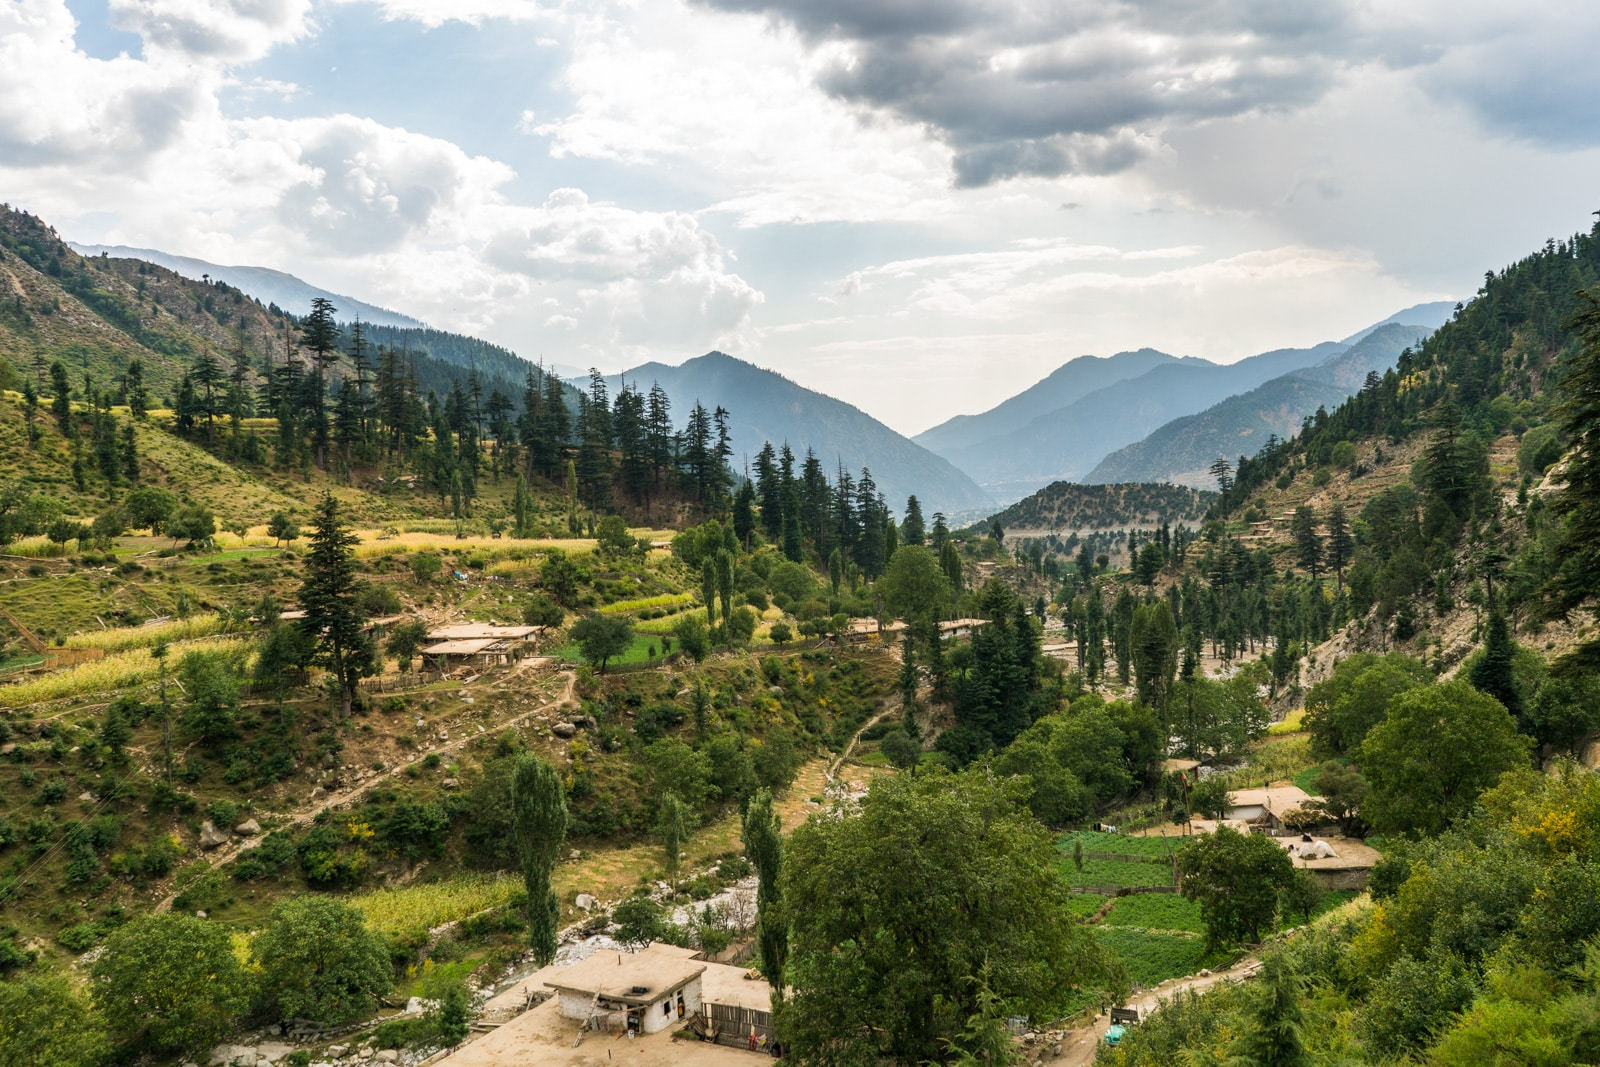 A small vilalges in the mountains of Upper Dir district in Pakistan